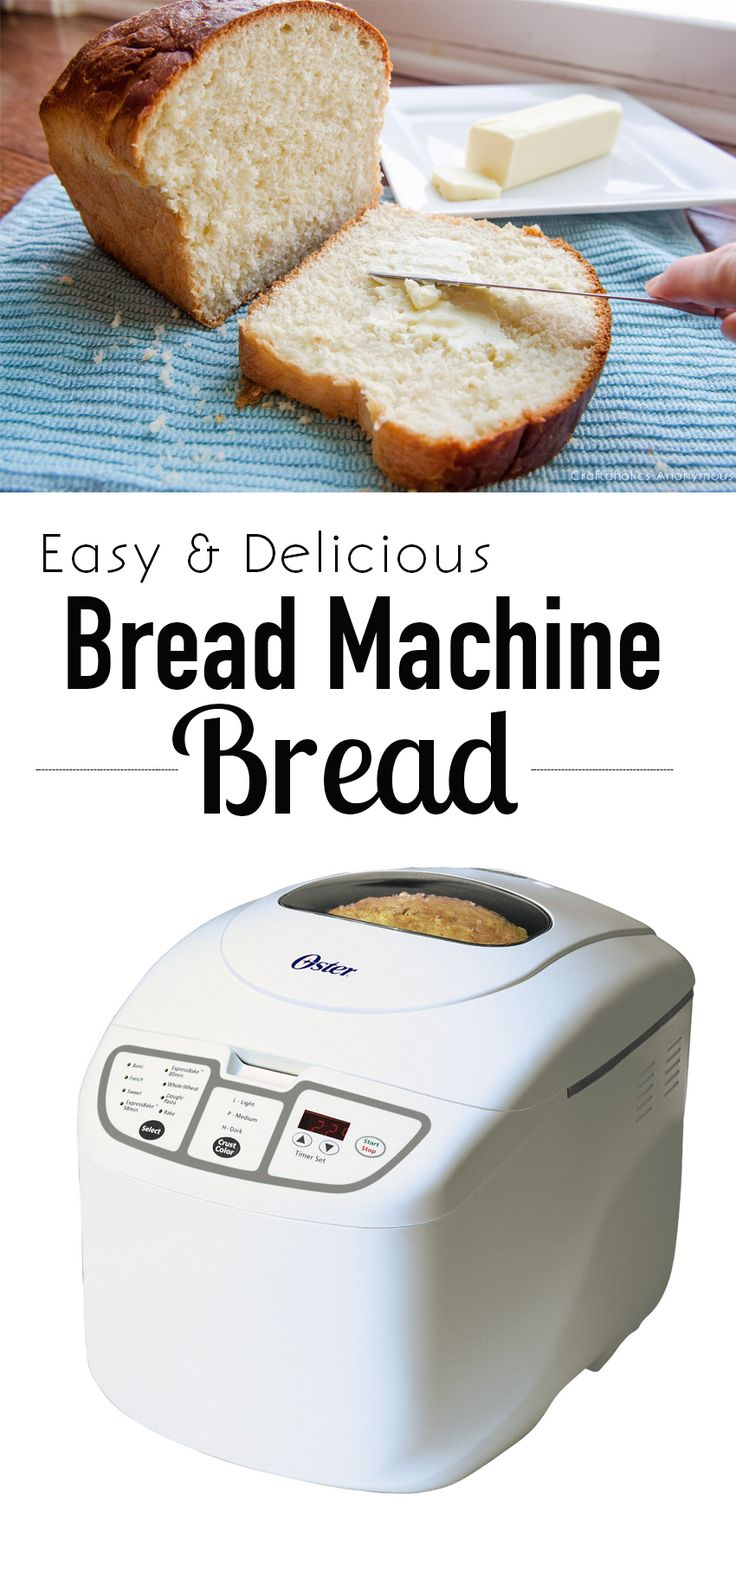 Pull out bed chair twin wroc awski informator internetowy wroc aw - Easy Delicious Bread Machine Bread